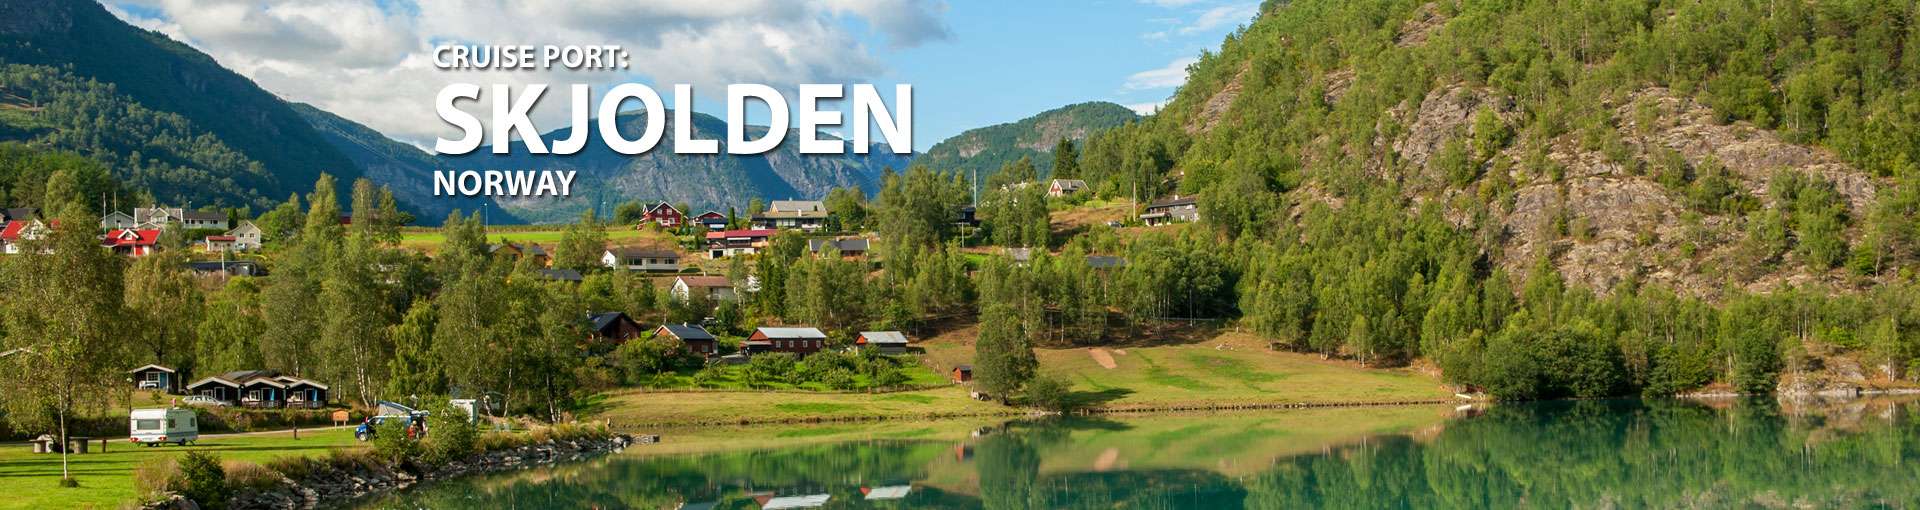 Cruises to Skjolden, Norway